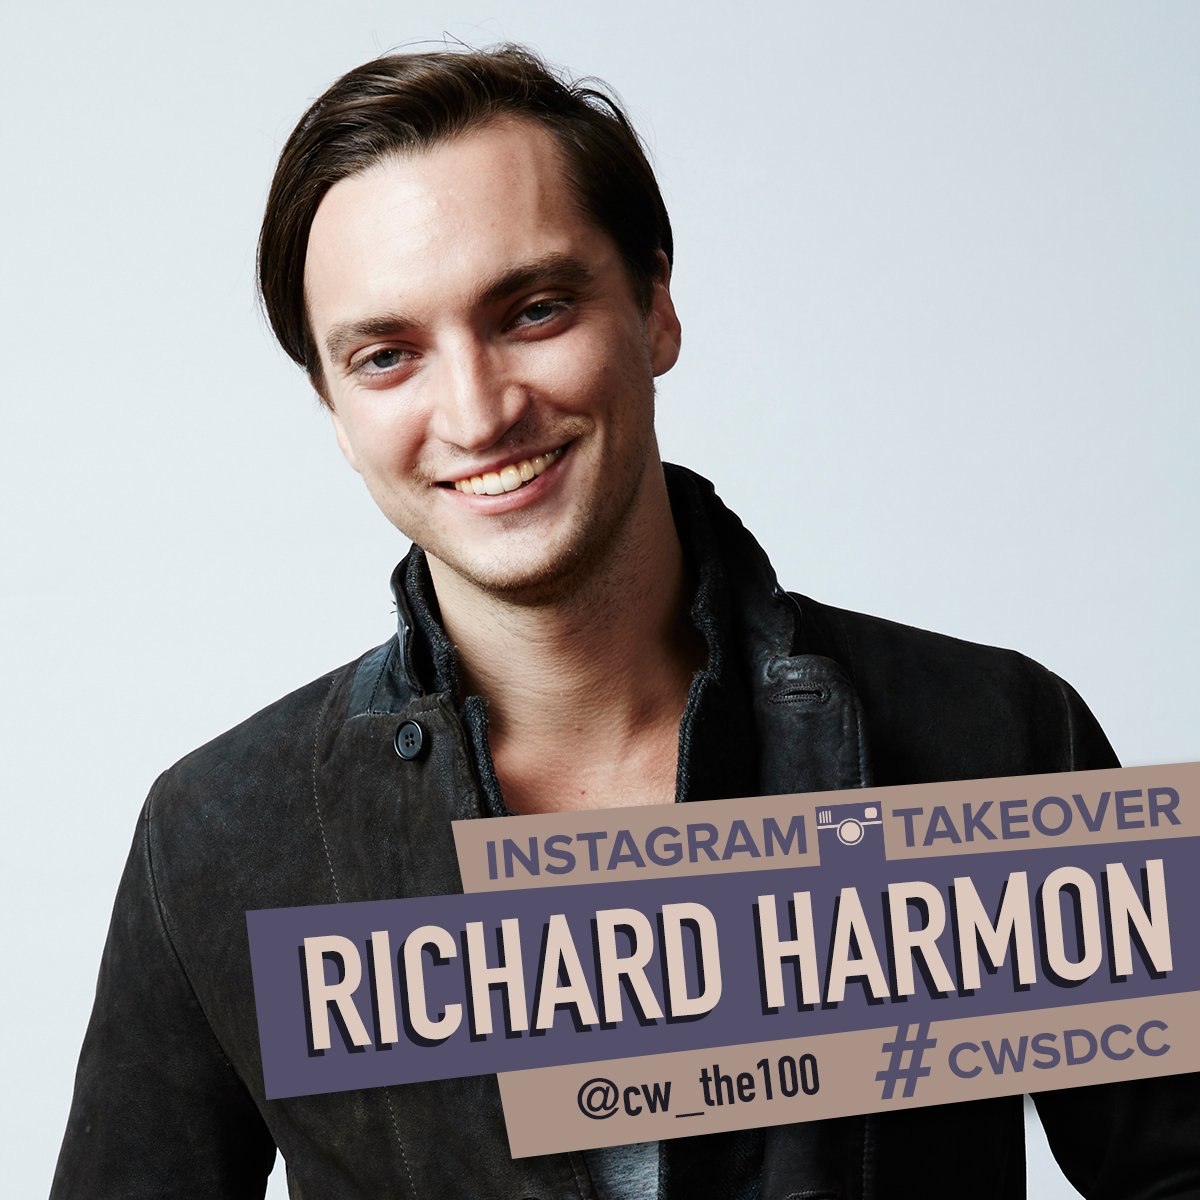 Experience #CWSDCC with @RichardSHarmon as he takes over #The100 Instagram account: https://t.co/Lkrqq17jo9 https://t.co/7YBVXwwjOL